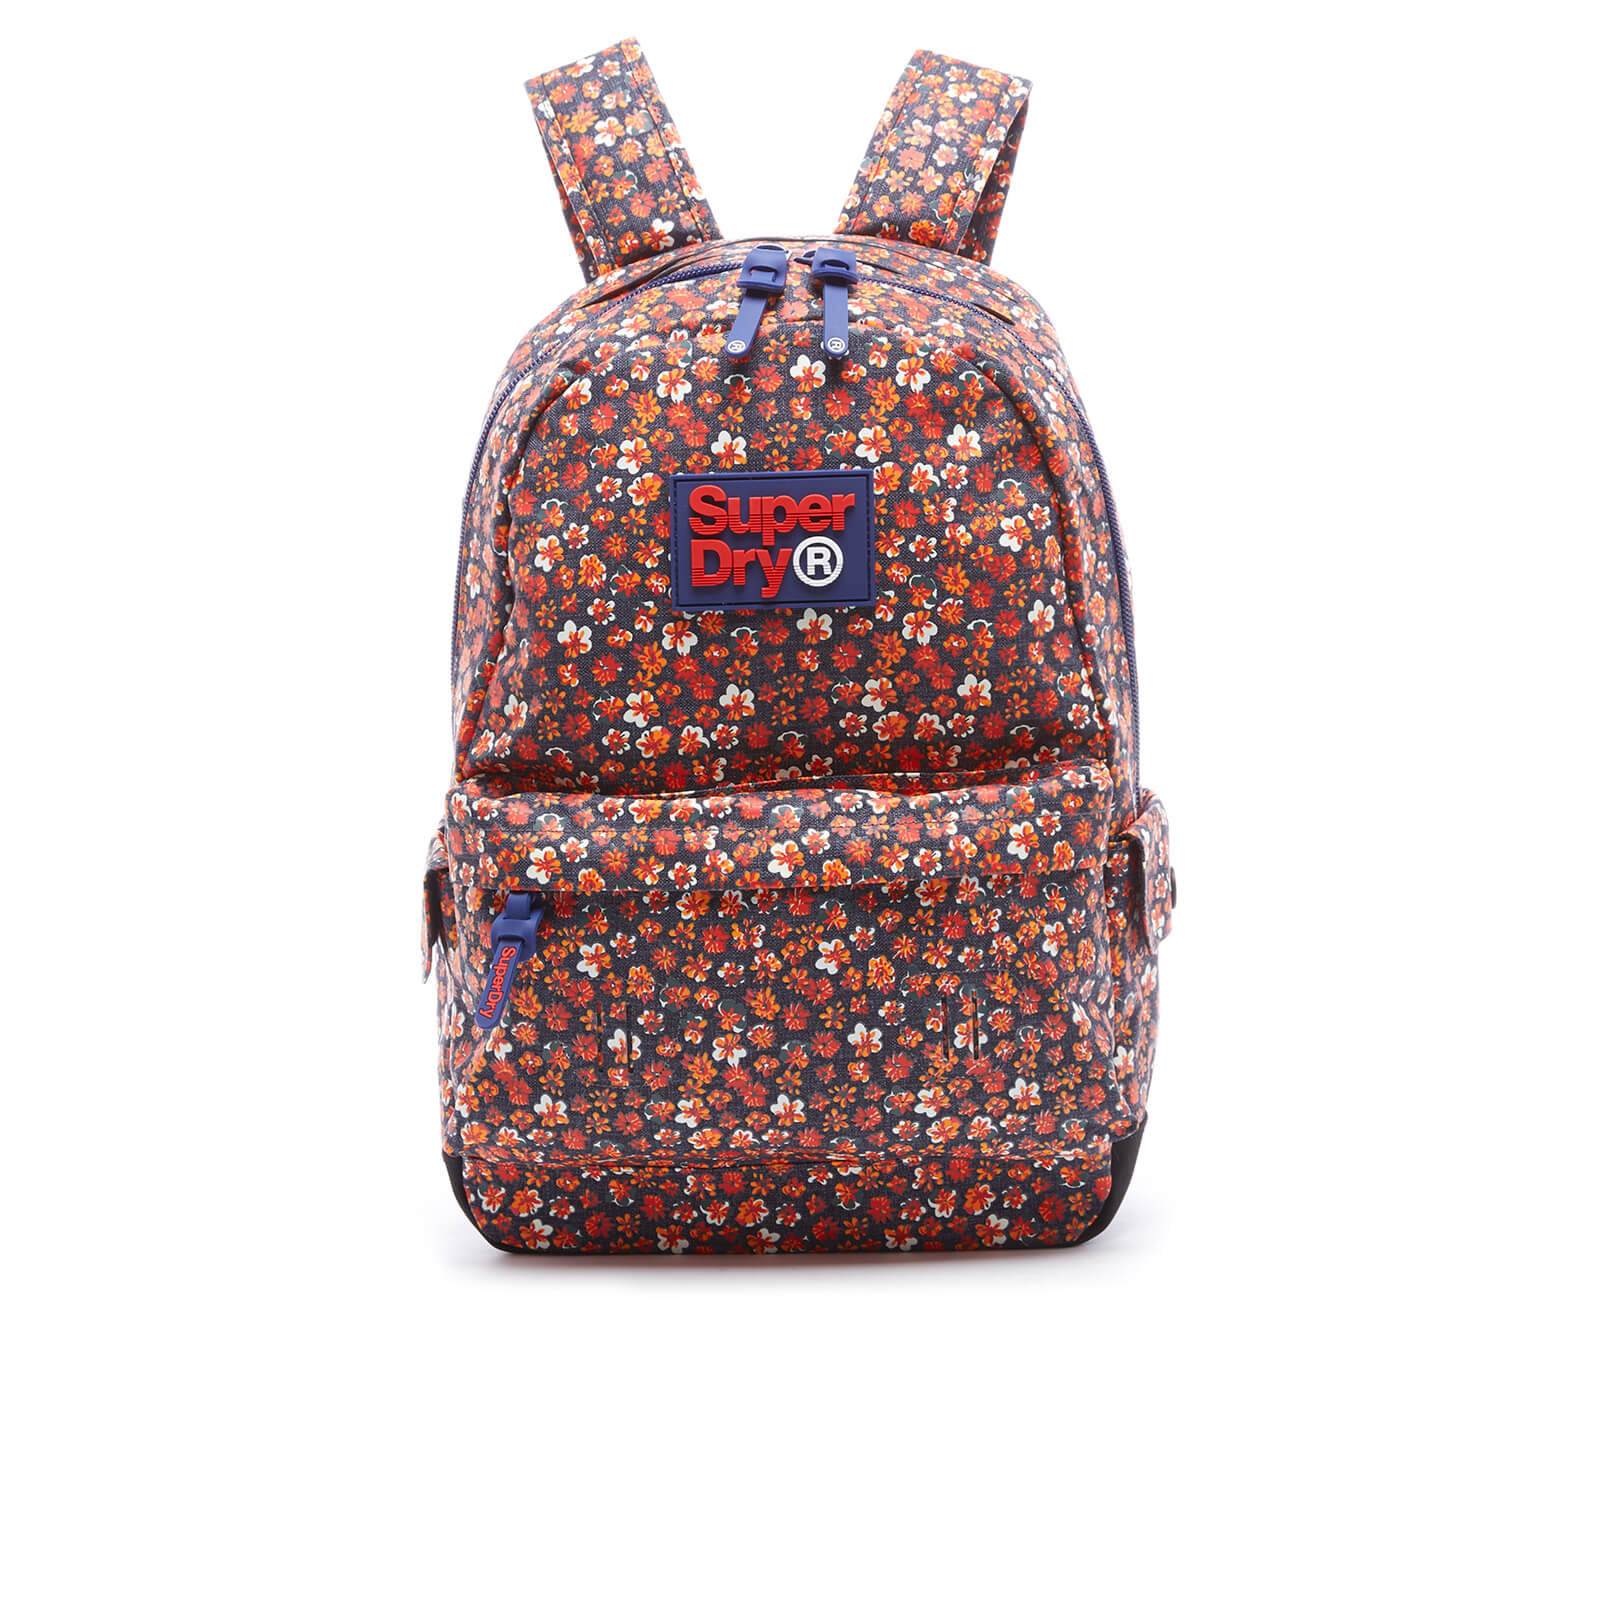 8242565b662 Superdry Women's Print Edition Montana Backpack - Splattered Floral Marl  Clothing | TheHut.com